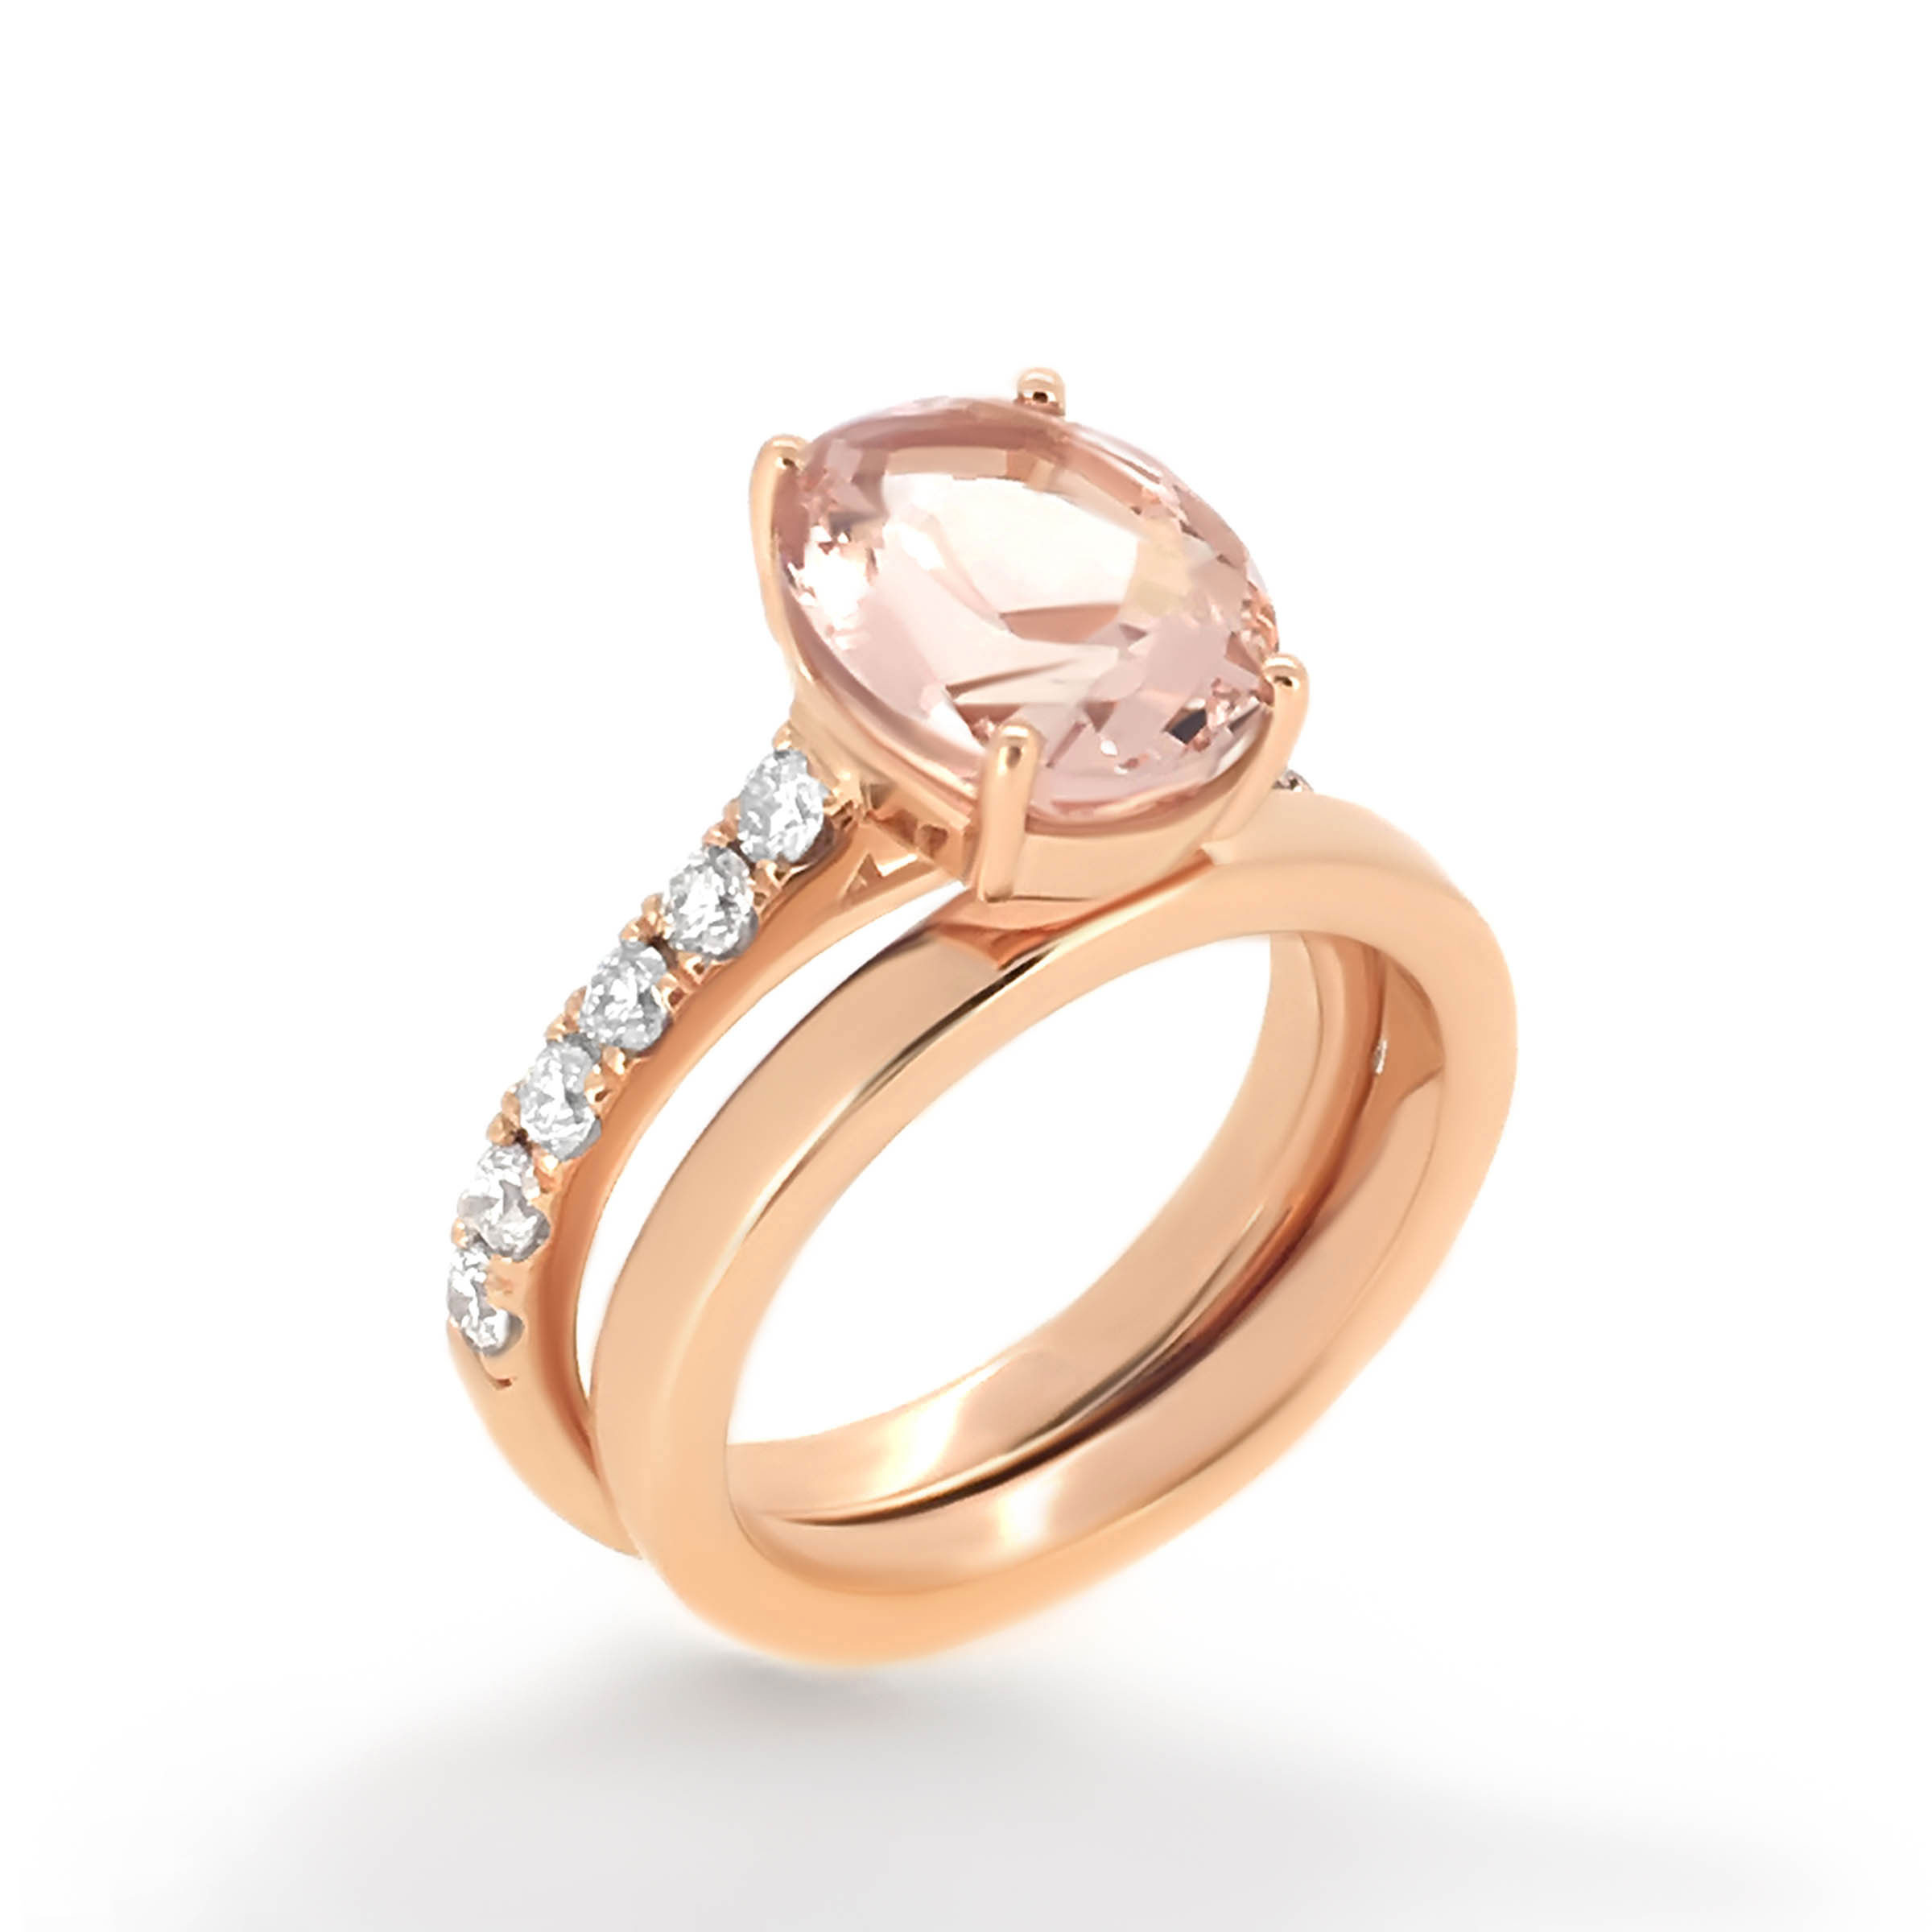 weird closed m im is upgrading a wedding it rings to diamond ring i topic that my morganite